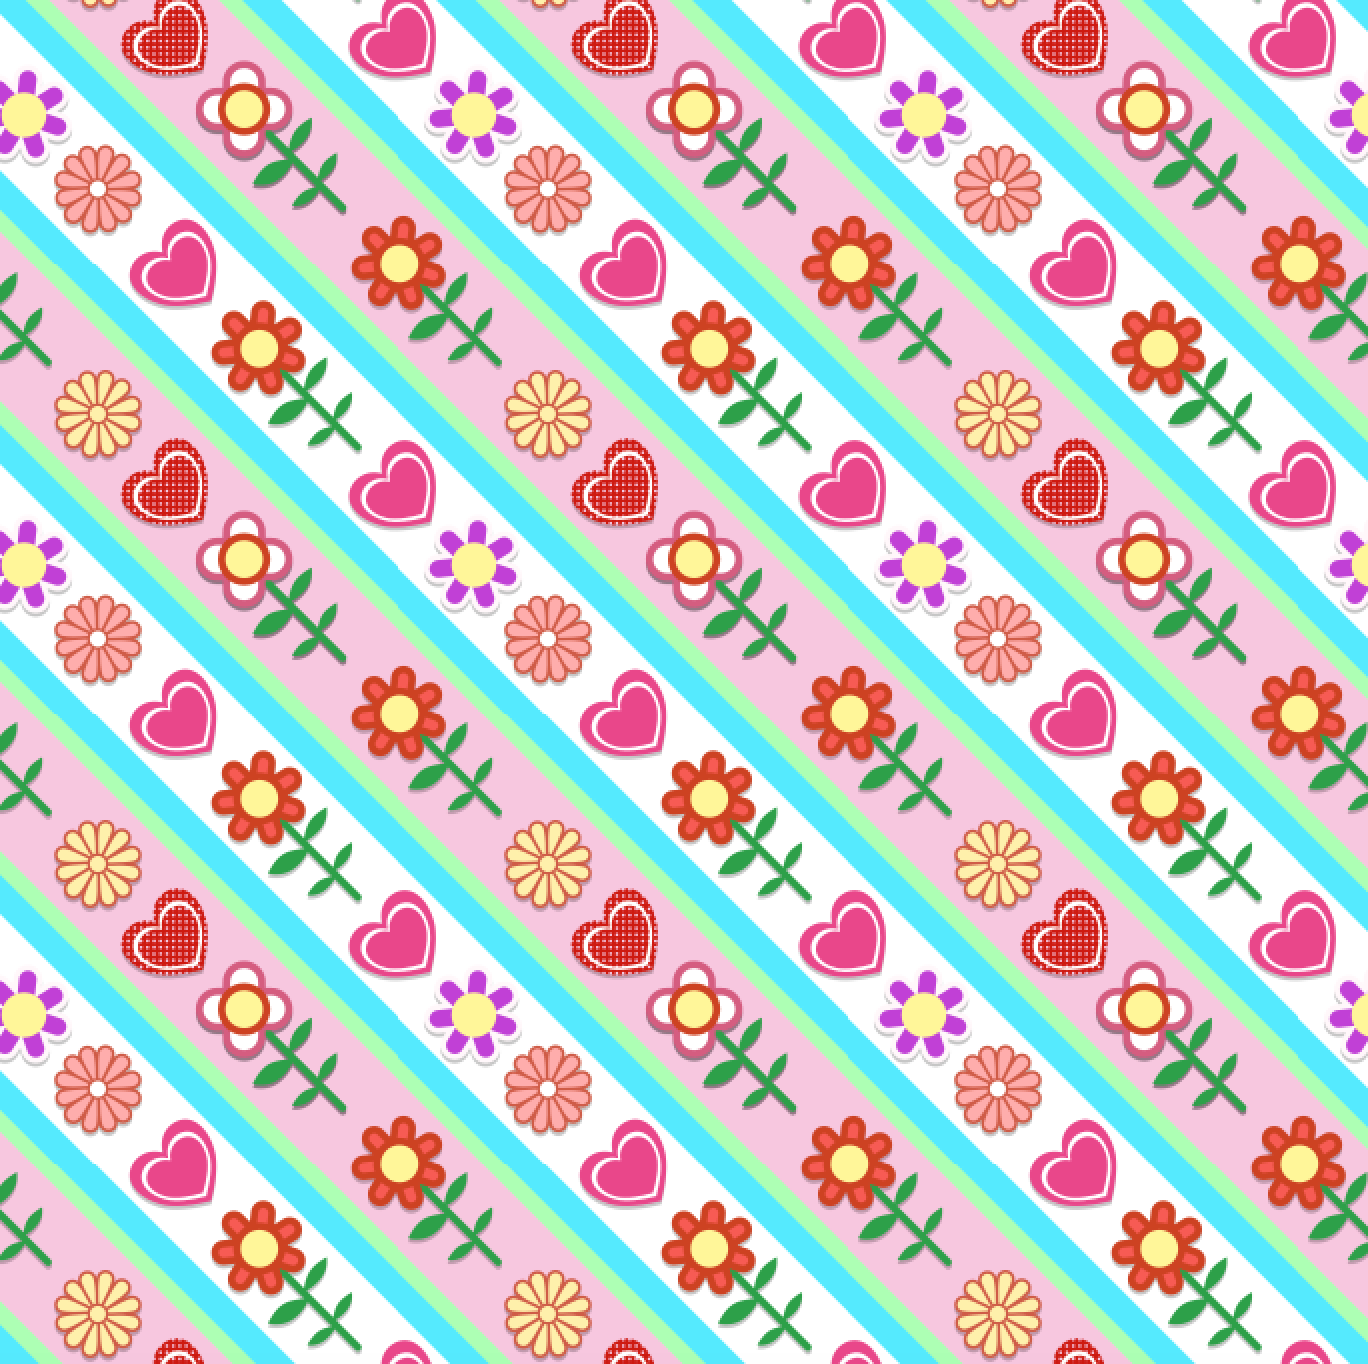 PRE ORDER - Peppa Floral - Digital Fabric Print